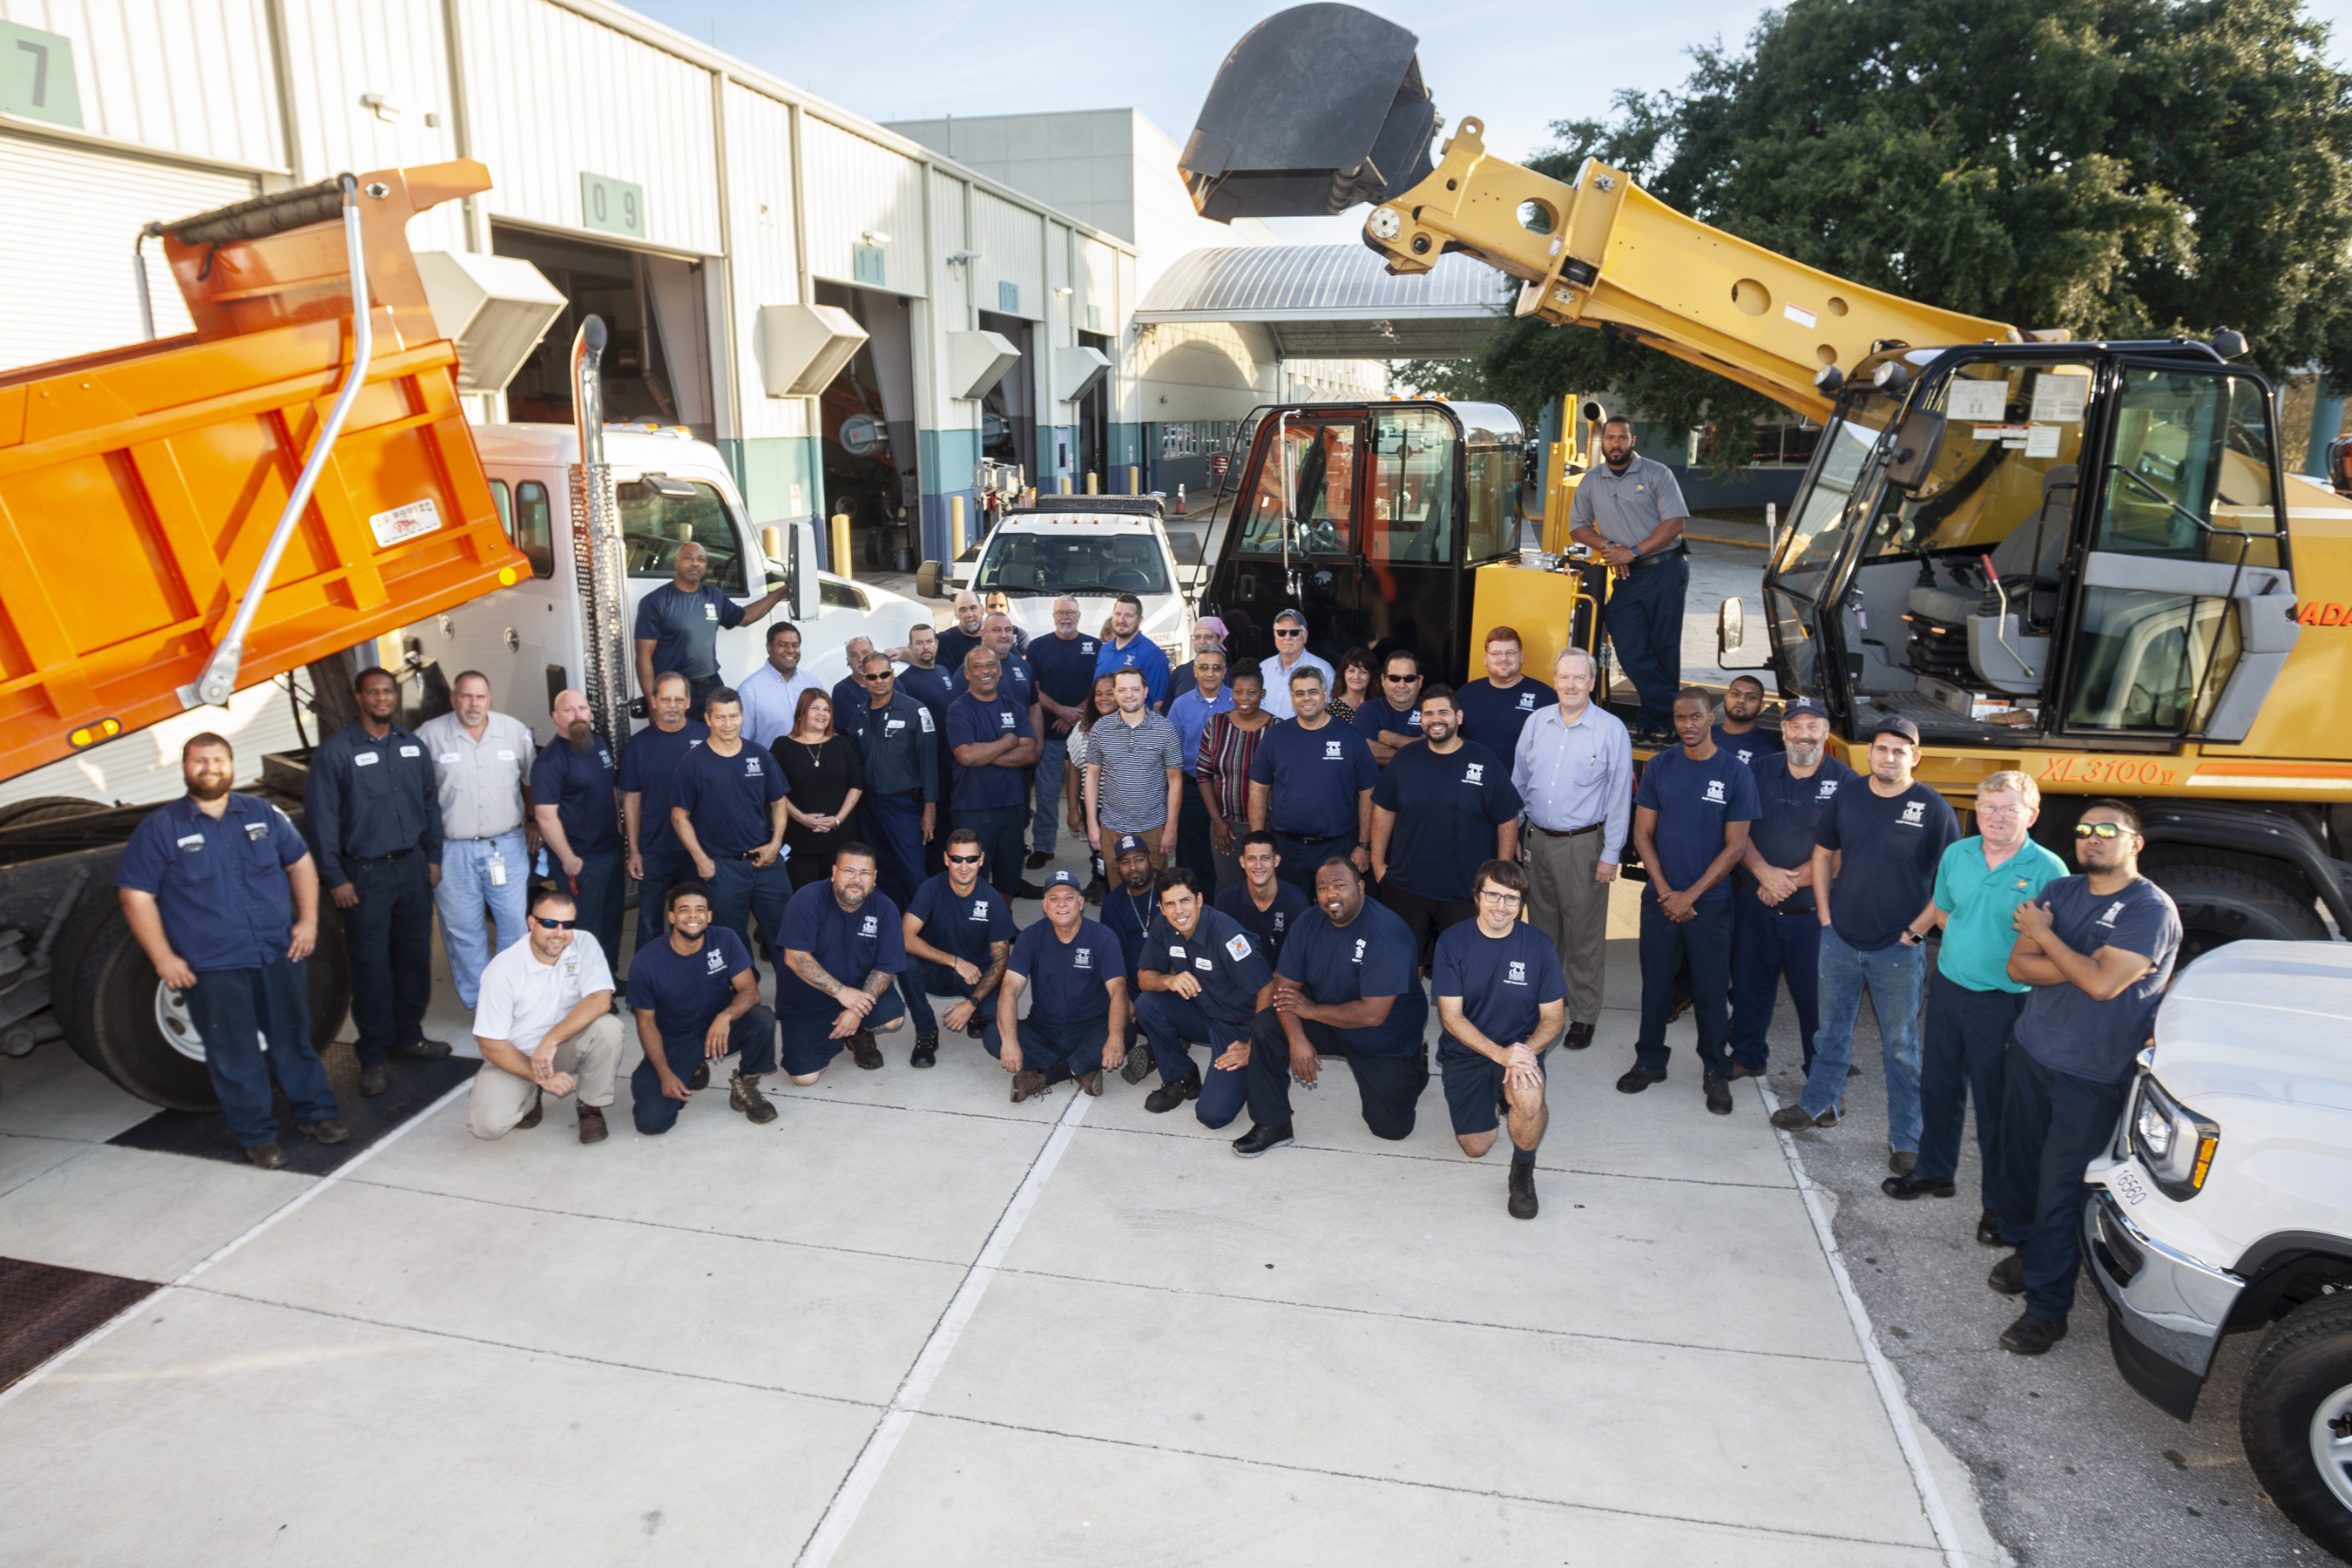 Group photo of the men and women who make up the Fleet Management team. They stand among different vehicles, including trucks